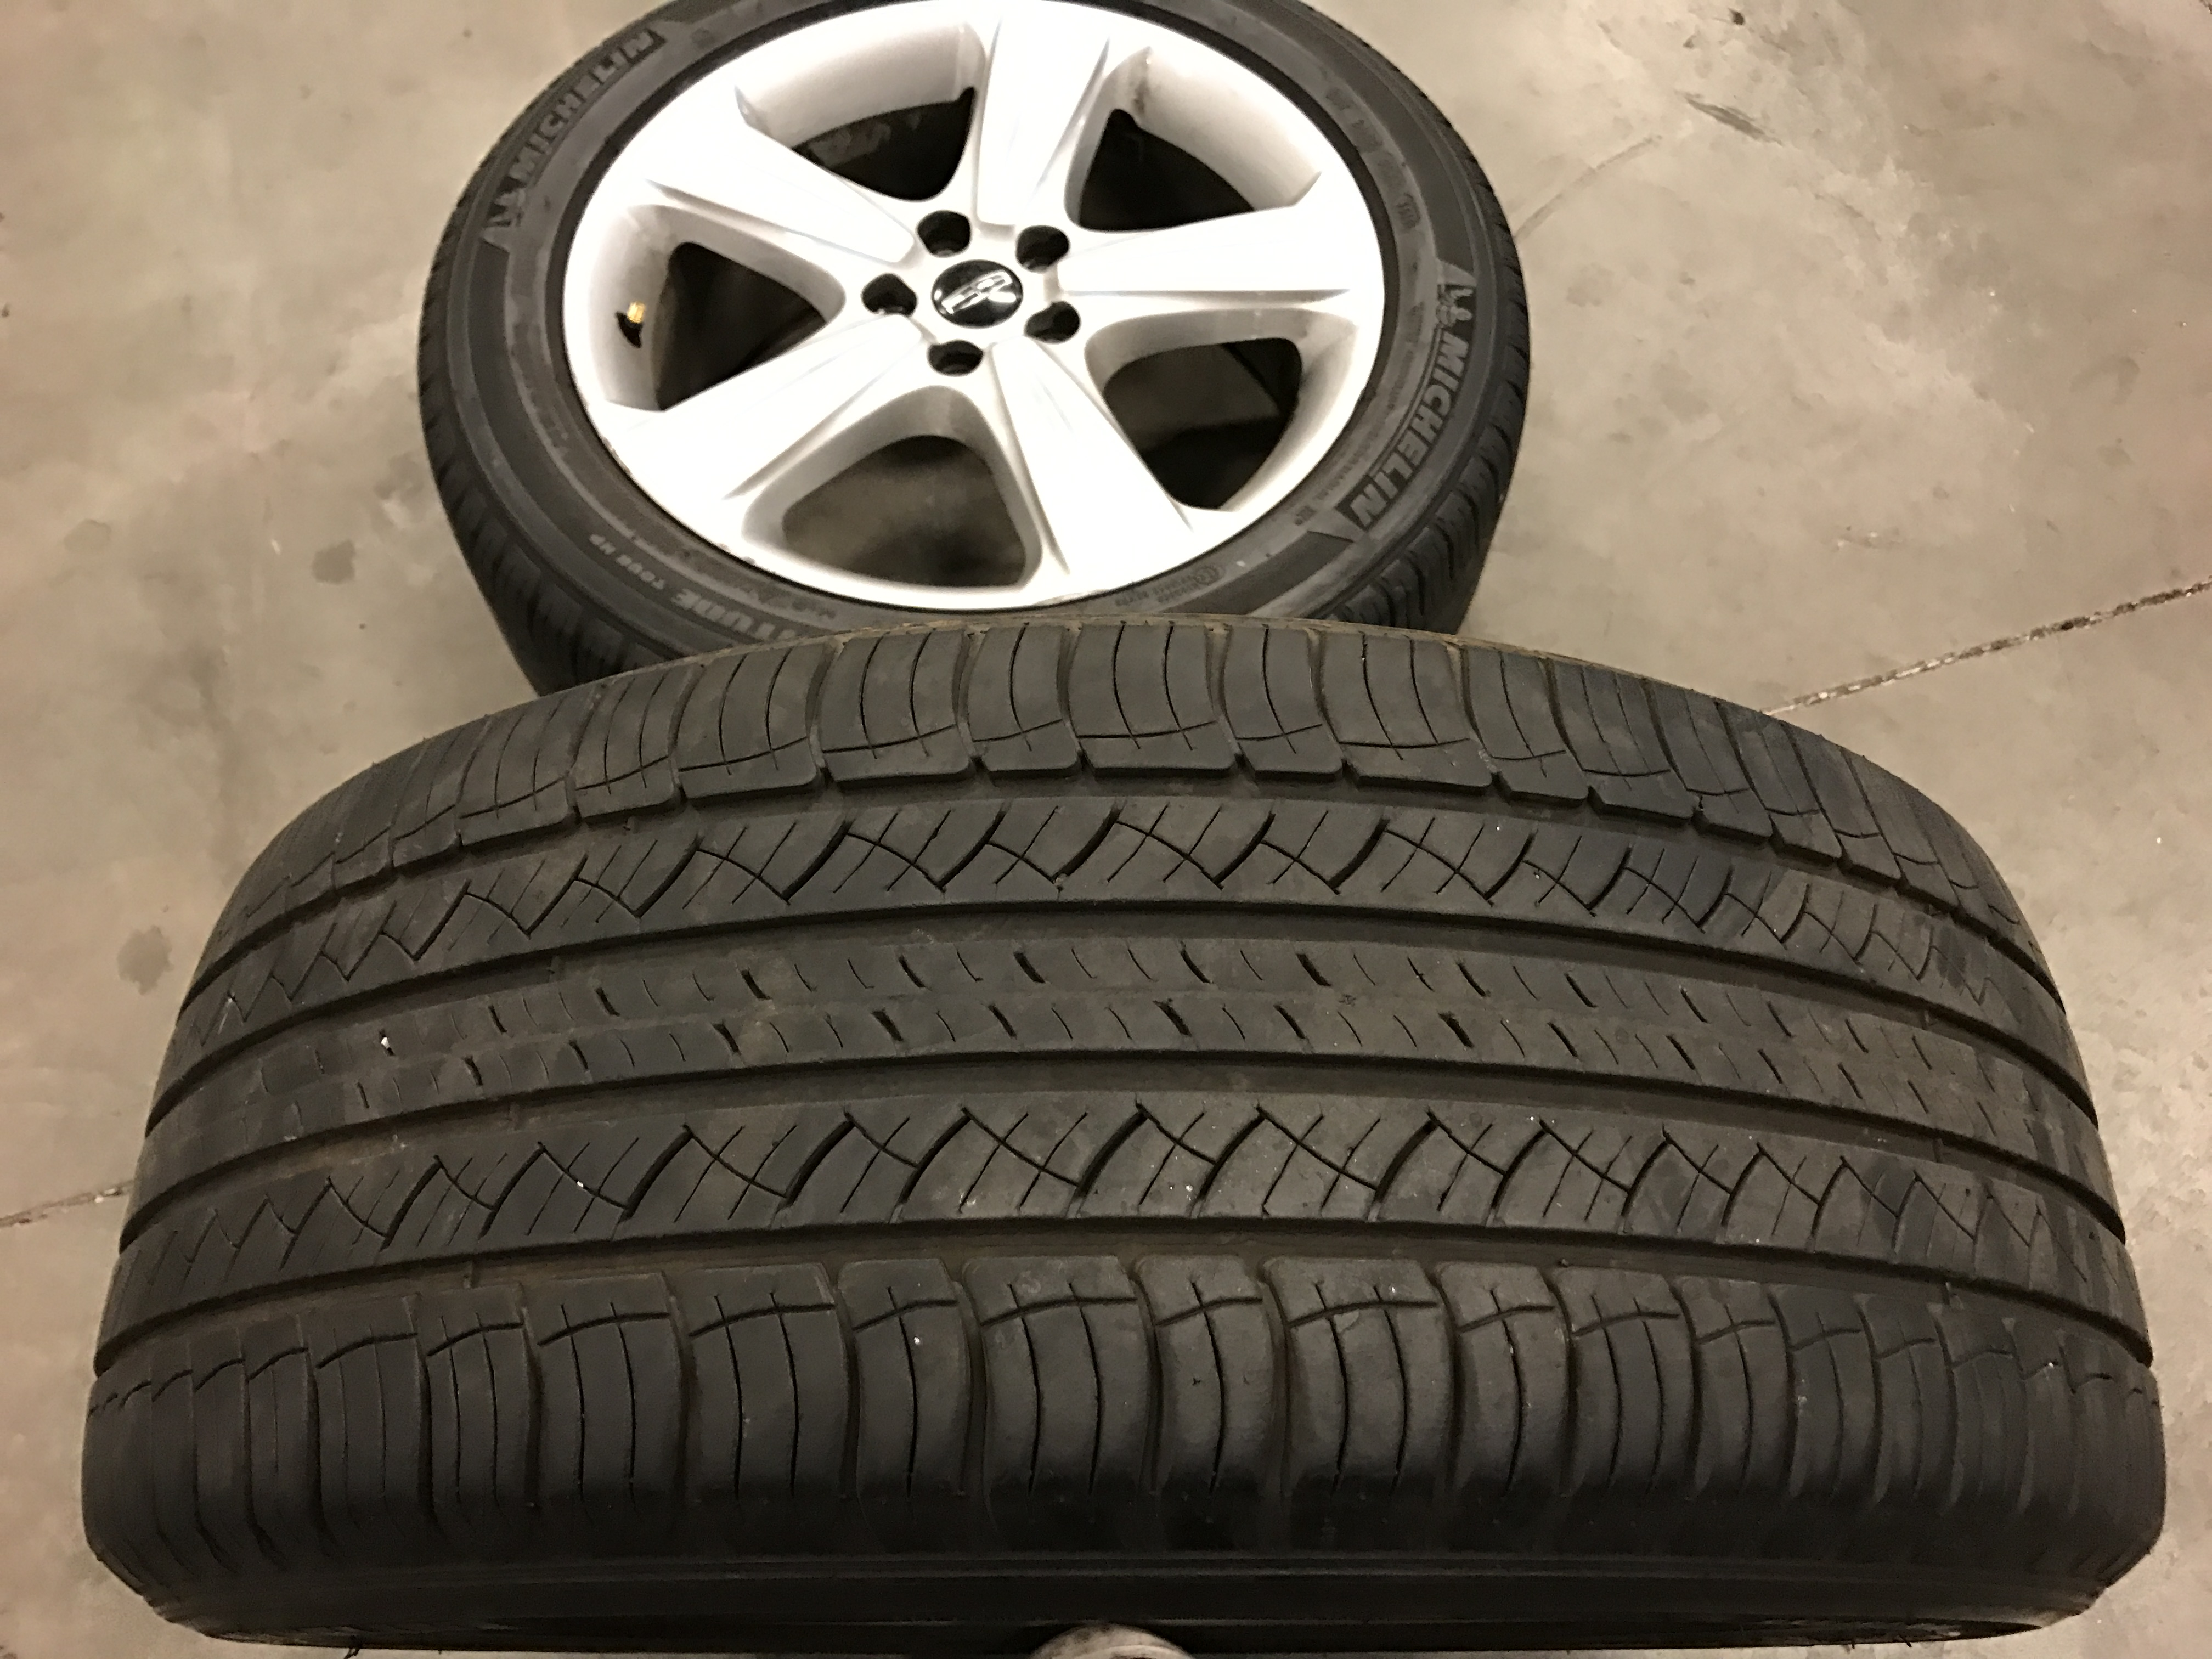 2017 Lincoln Mkc Select >> Lincoln MKC OEM Wheels + Tires - Extreme Wheels